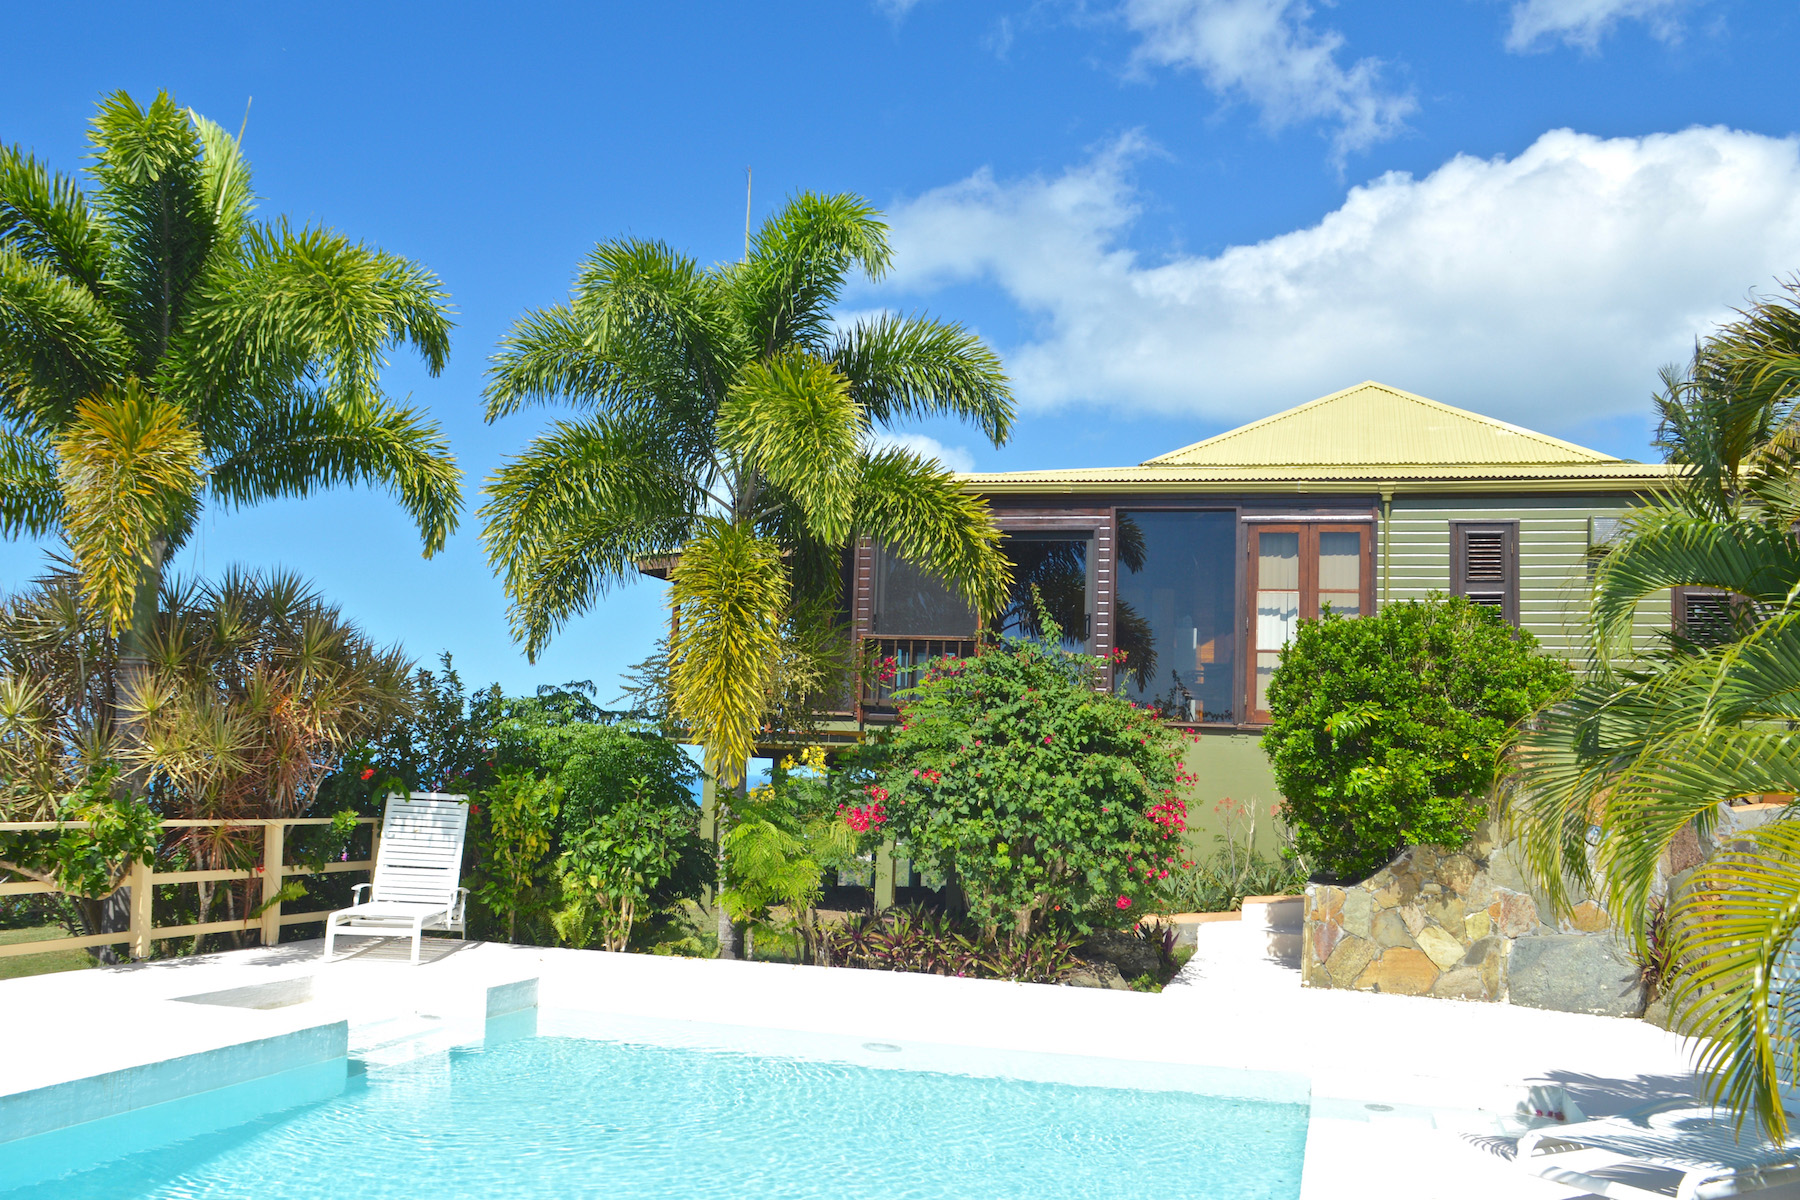 واحد منزل الأسرة للـ Sale في Serenity House Cane Garden Bay, Tortola British Virgin Islands